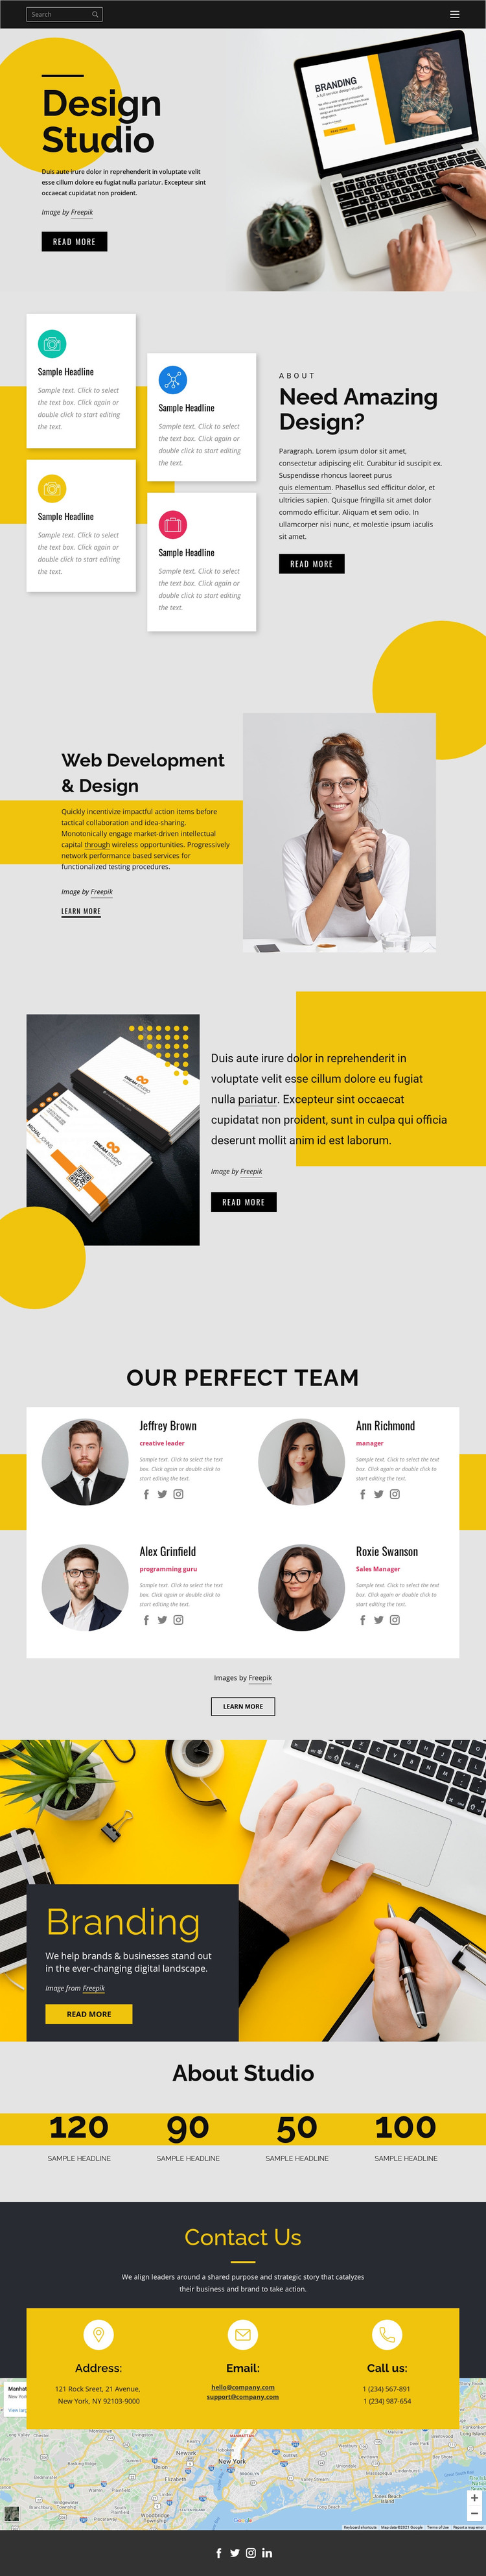 Web design studio WordPress Theme